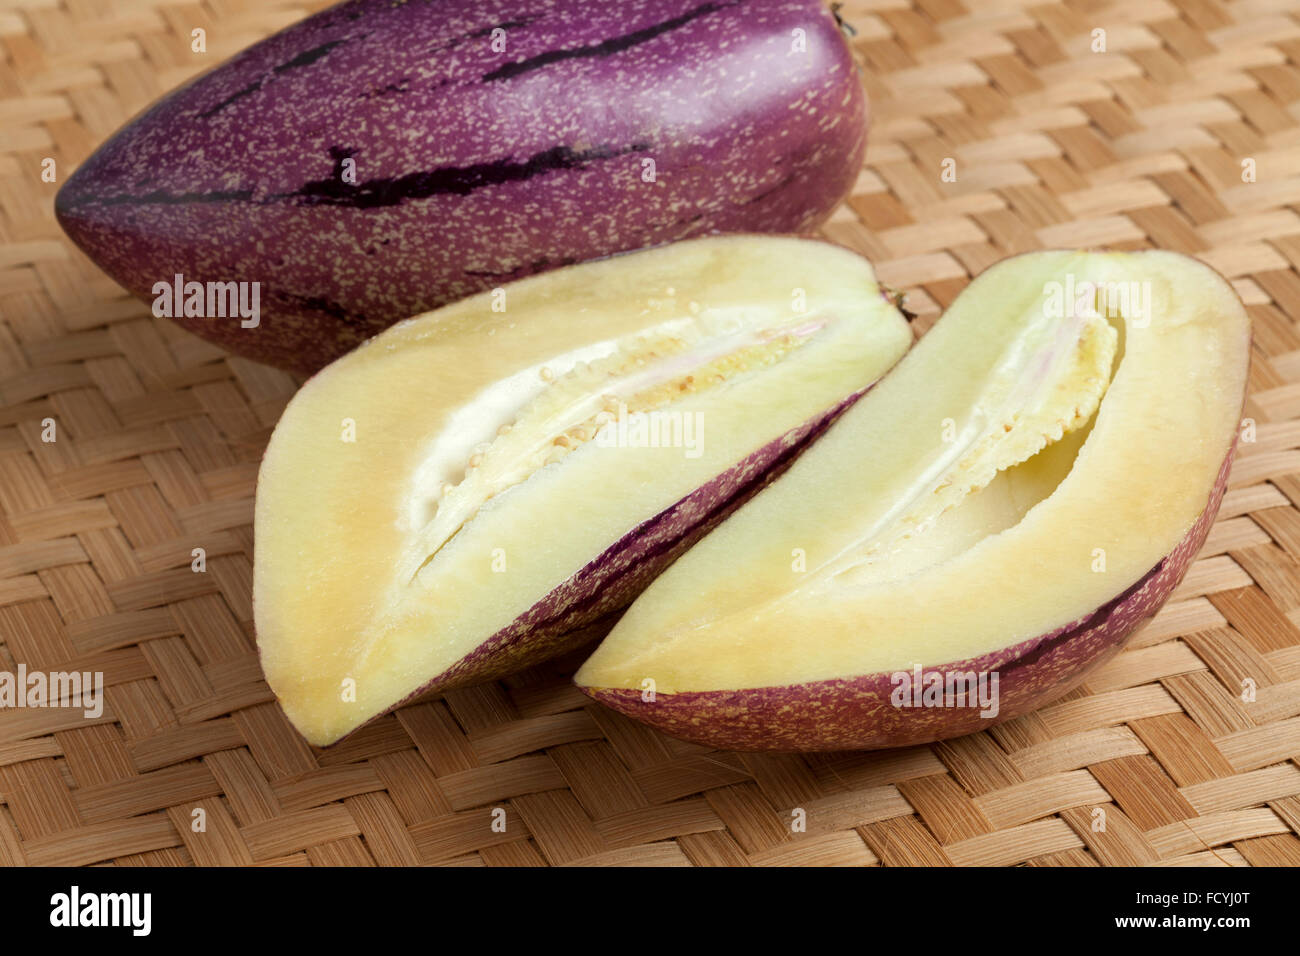 Fresh whole and partial pepino fruit - Stock Image